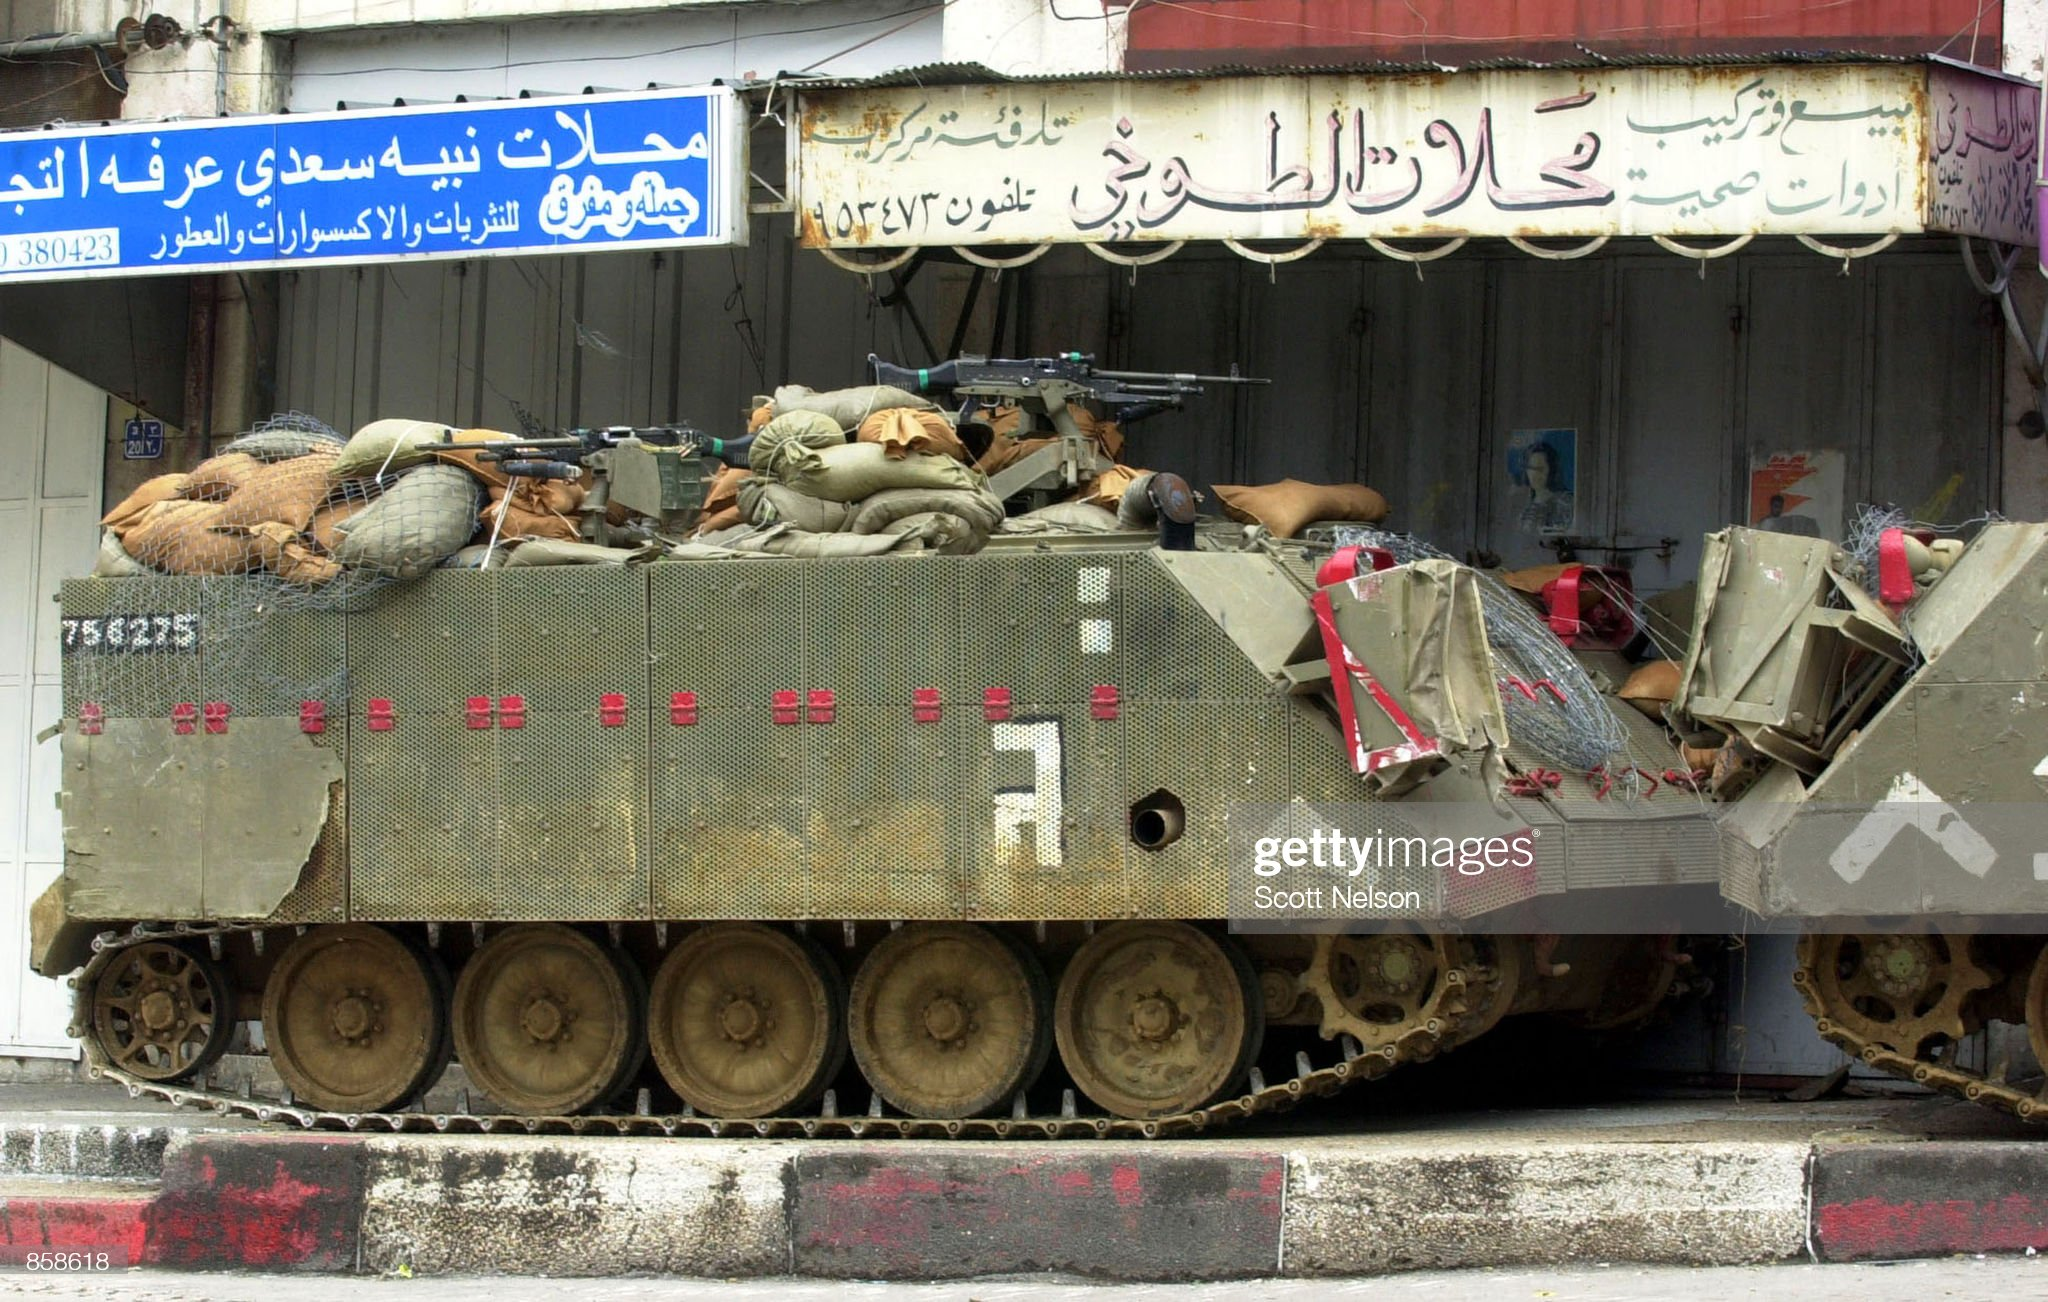 https://media.gettyimages.com/photos/israeli-tanks-and-apcs-remain-positioned-in-the-streets-following-a-picture-id858618?s=2048x2048